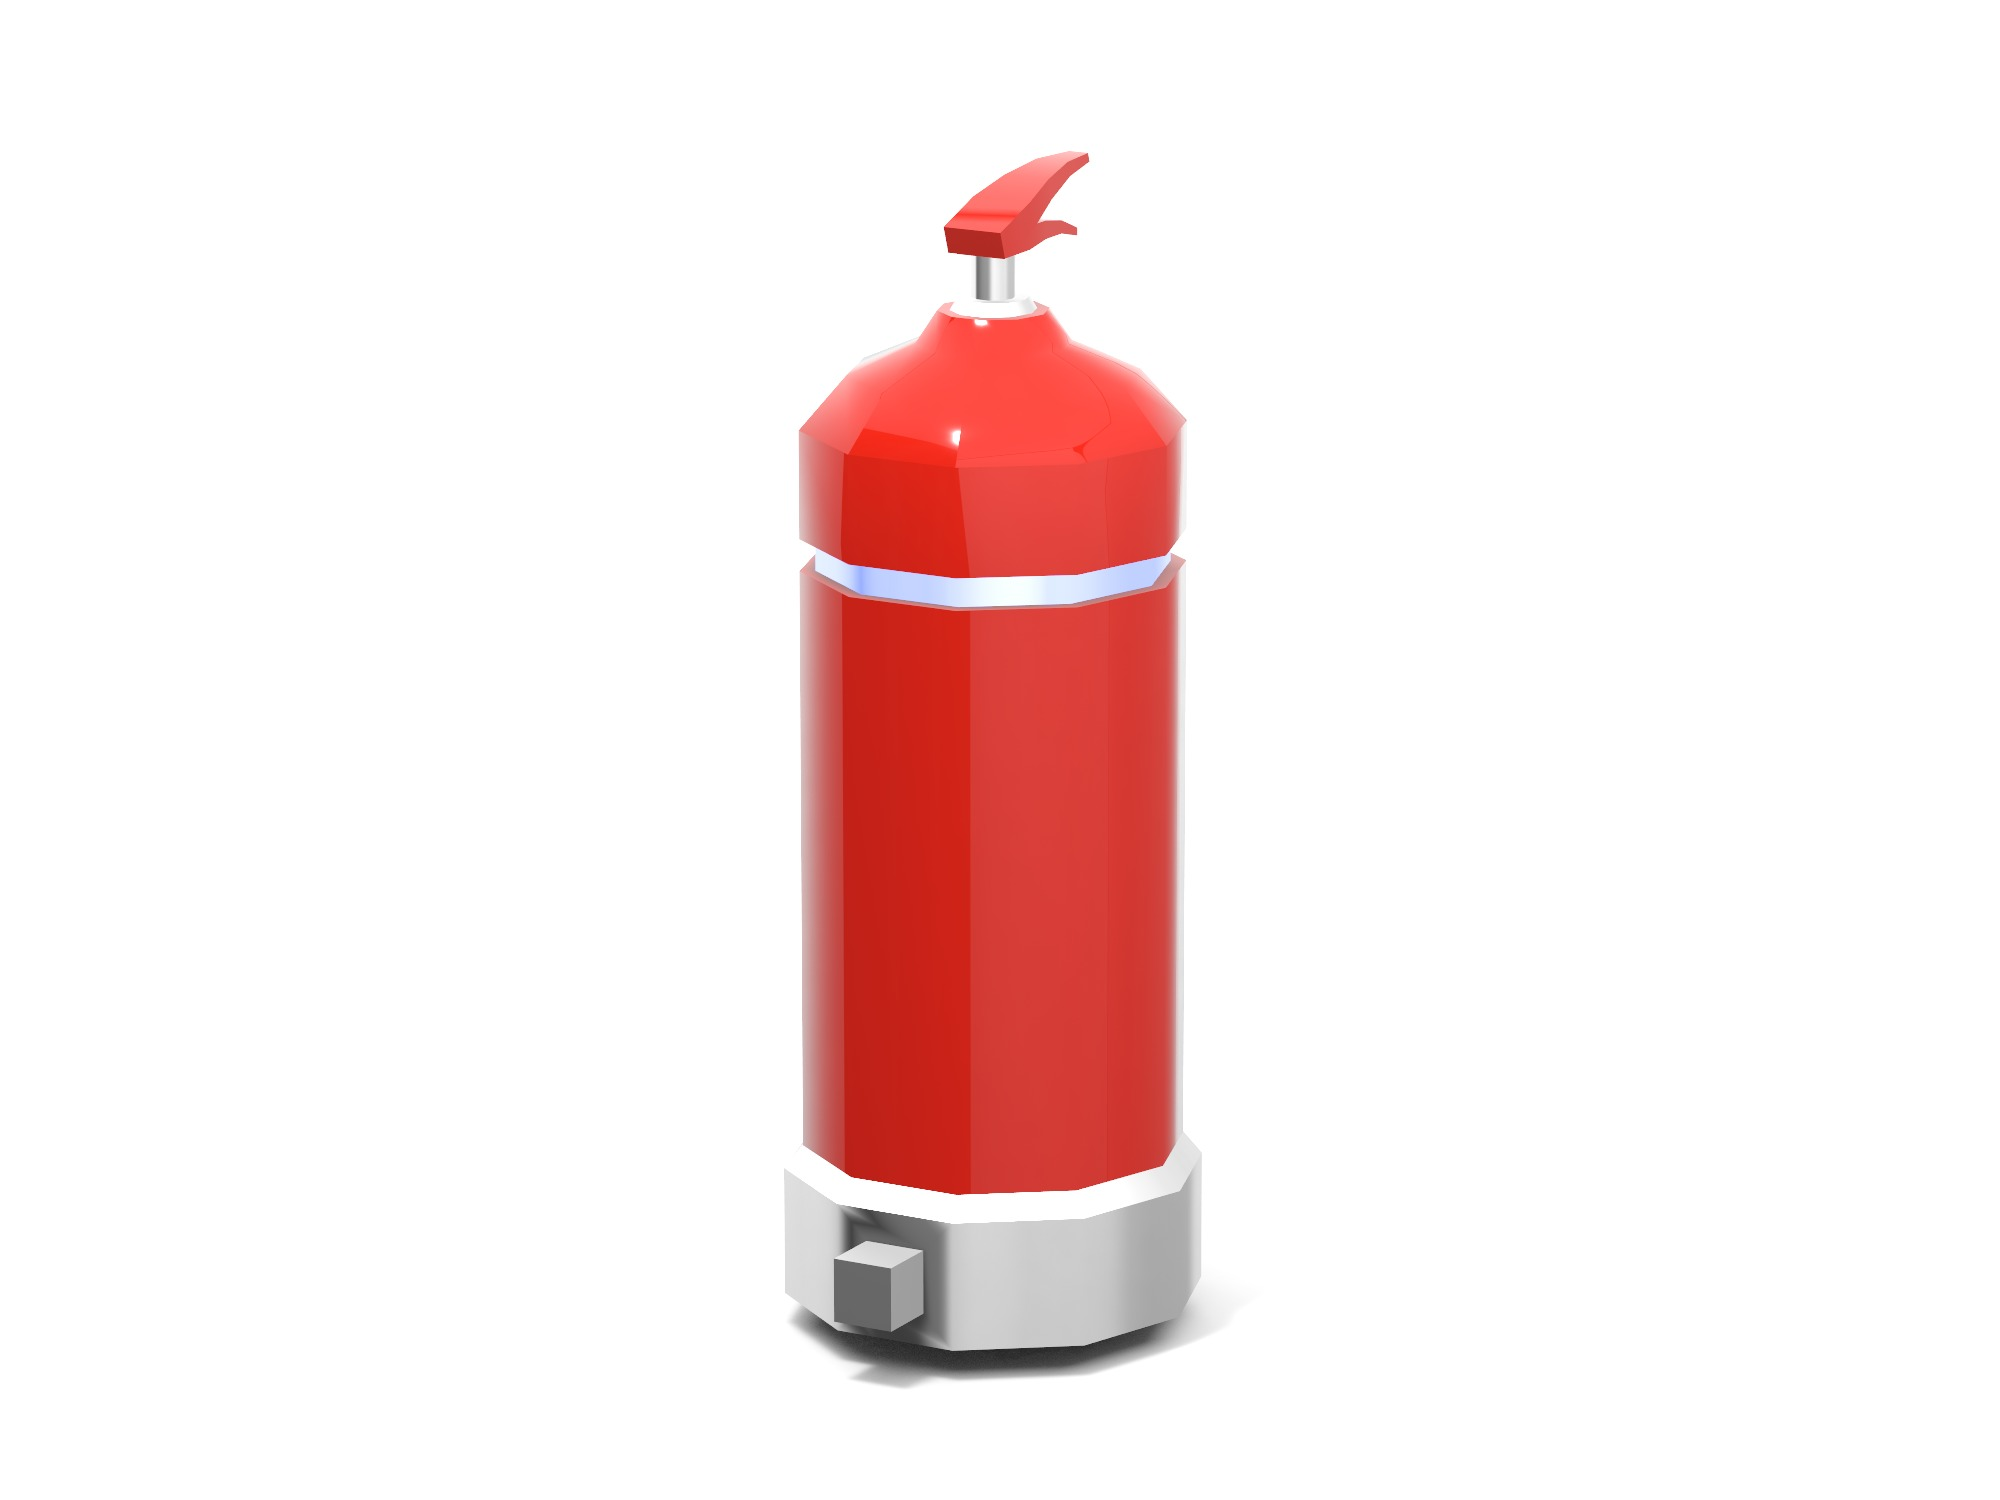 Fire Extinguisher - 3D design by Vectary assets Jun 3, 2019